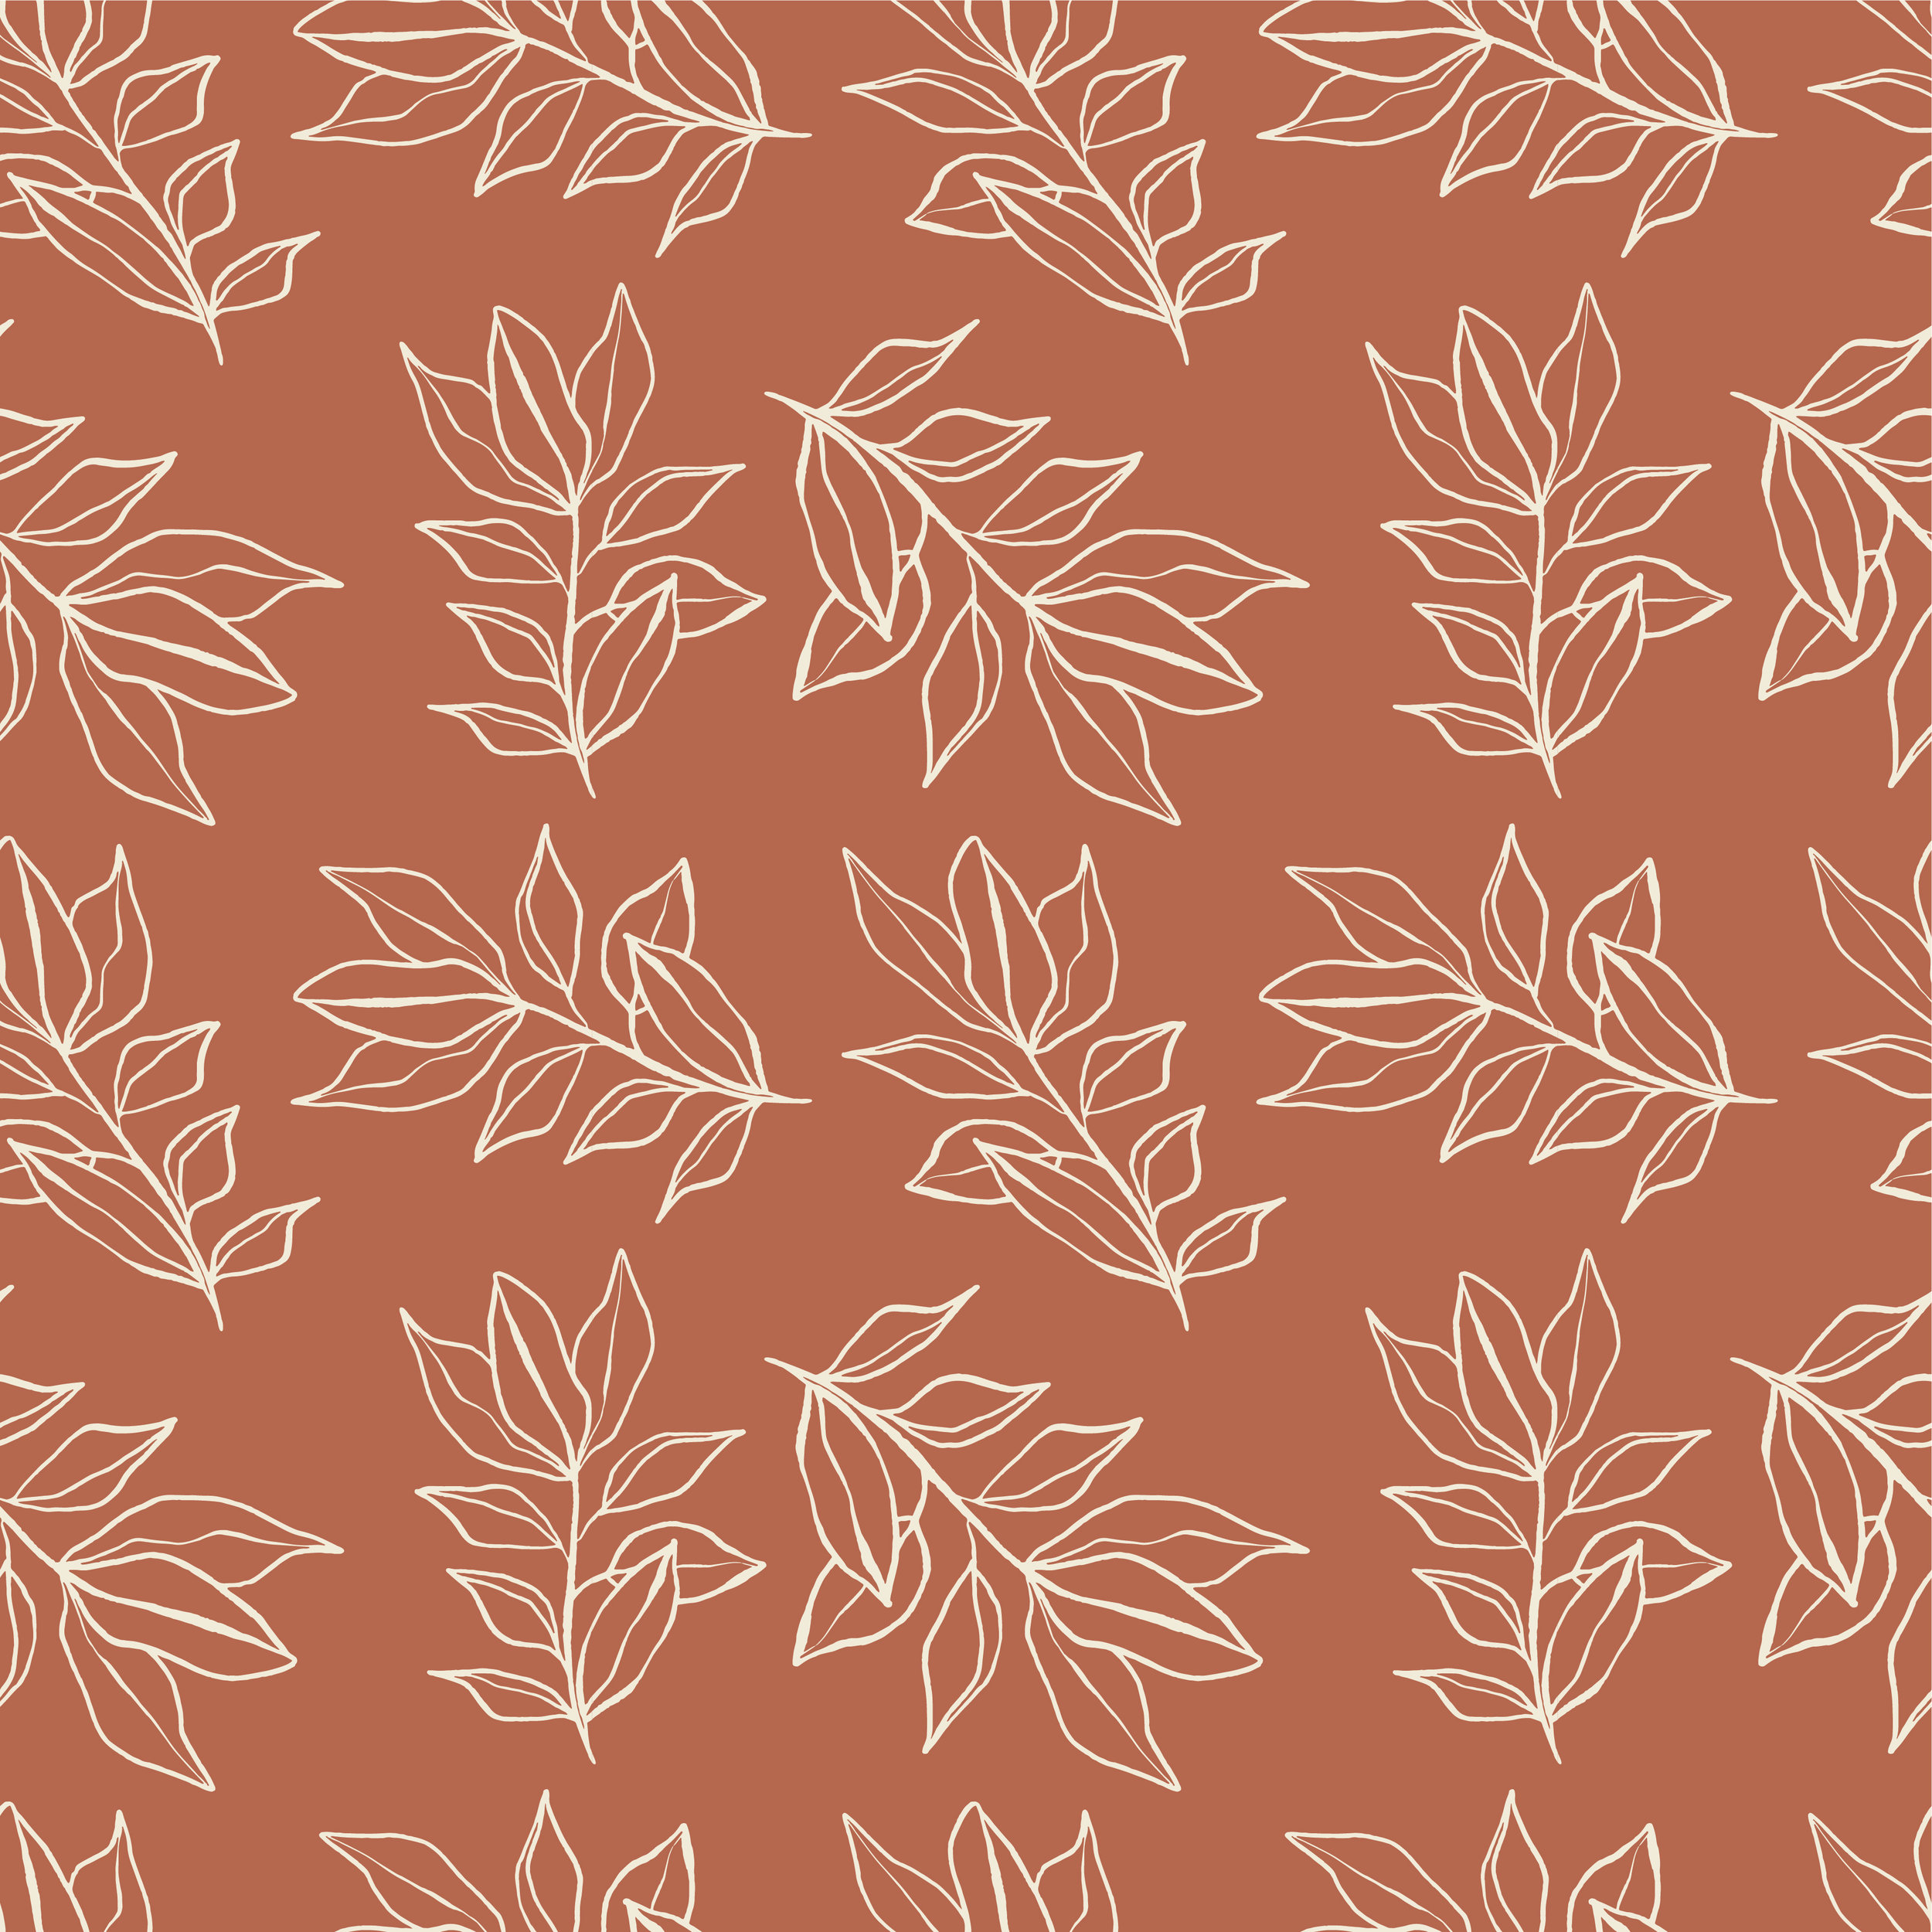 botanical patterns-07.jpg